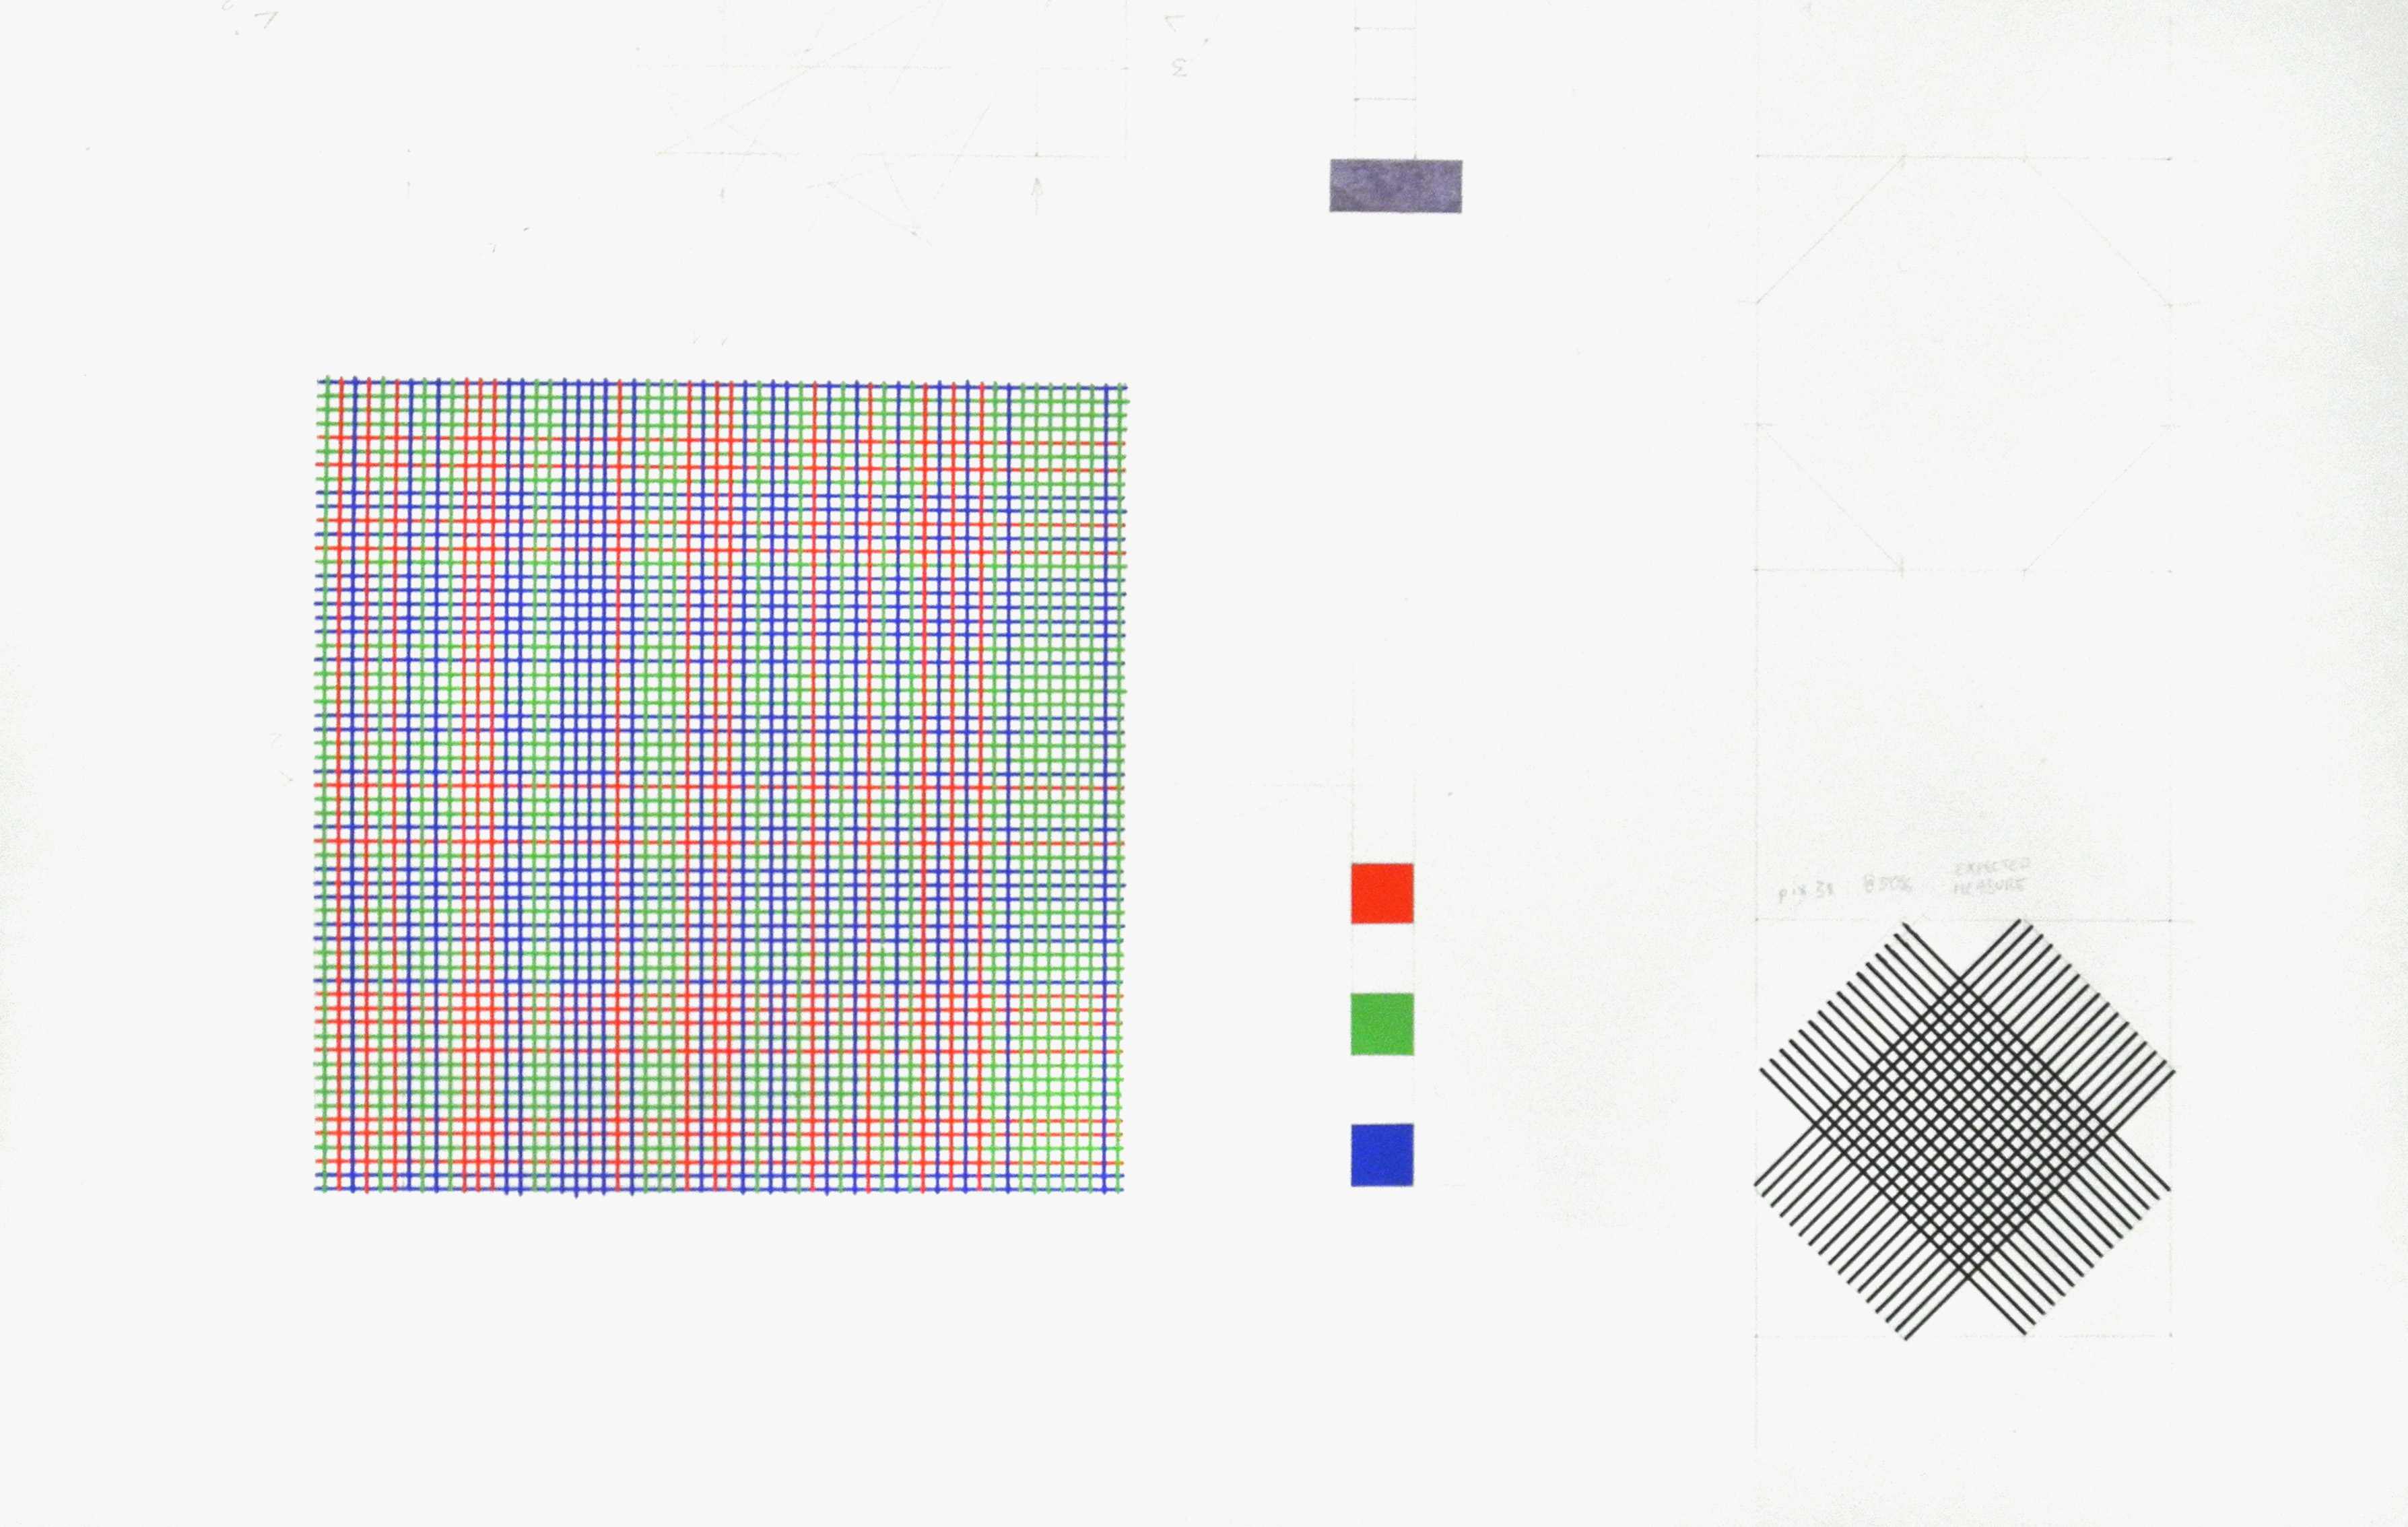 adrien-lucca-d65-n2-fragment-alea-and-measure-rgb-7-feb-2012